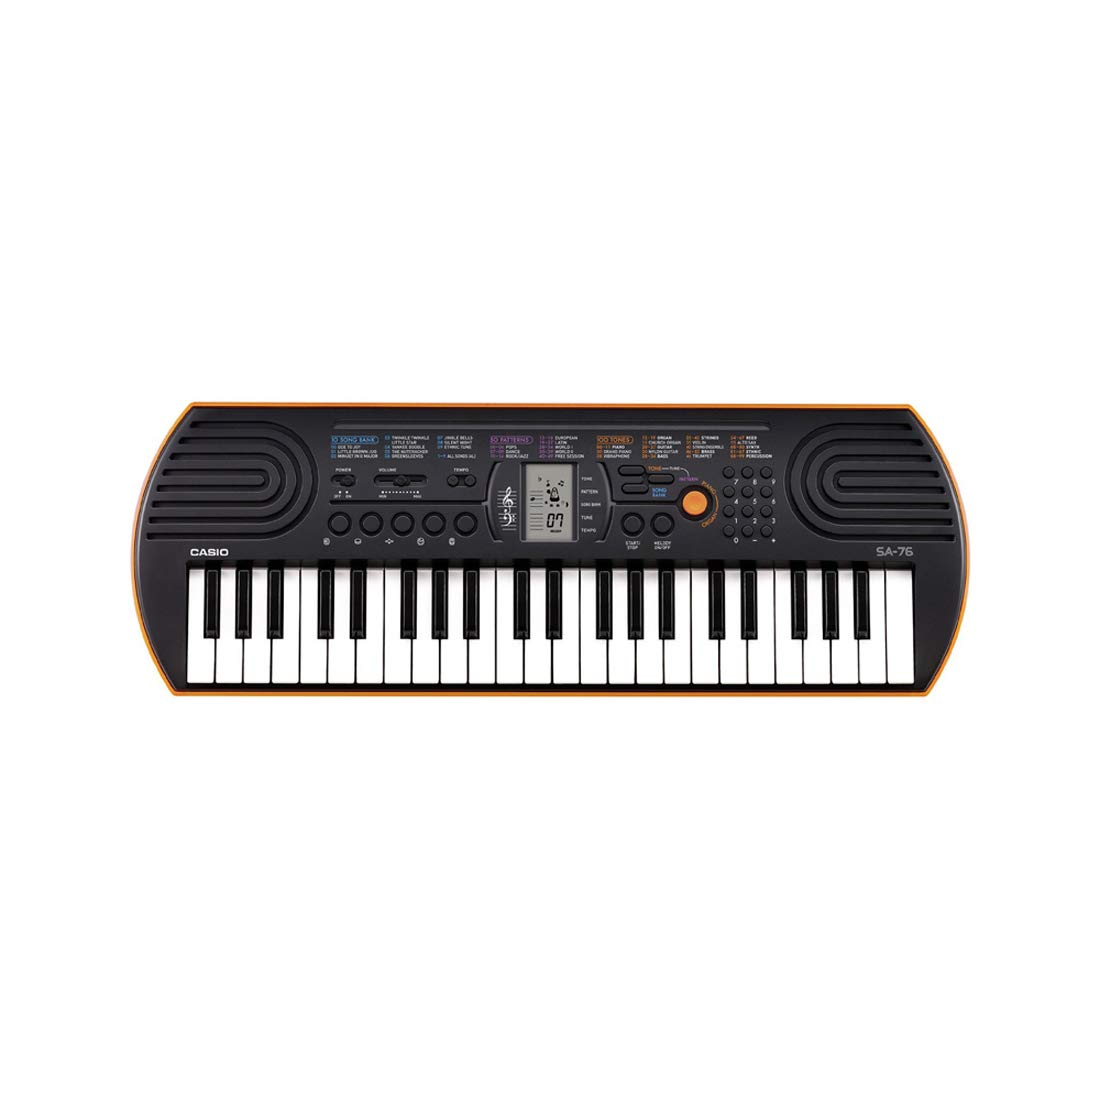 Amazon.com: Casio SA76 44 Keys 100 Tones with World Tour Power Supply: Musical Instruments